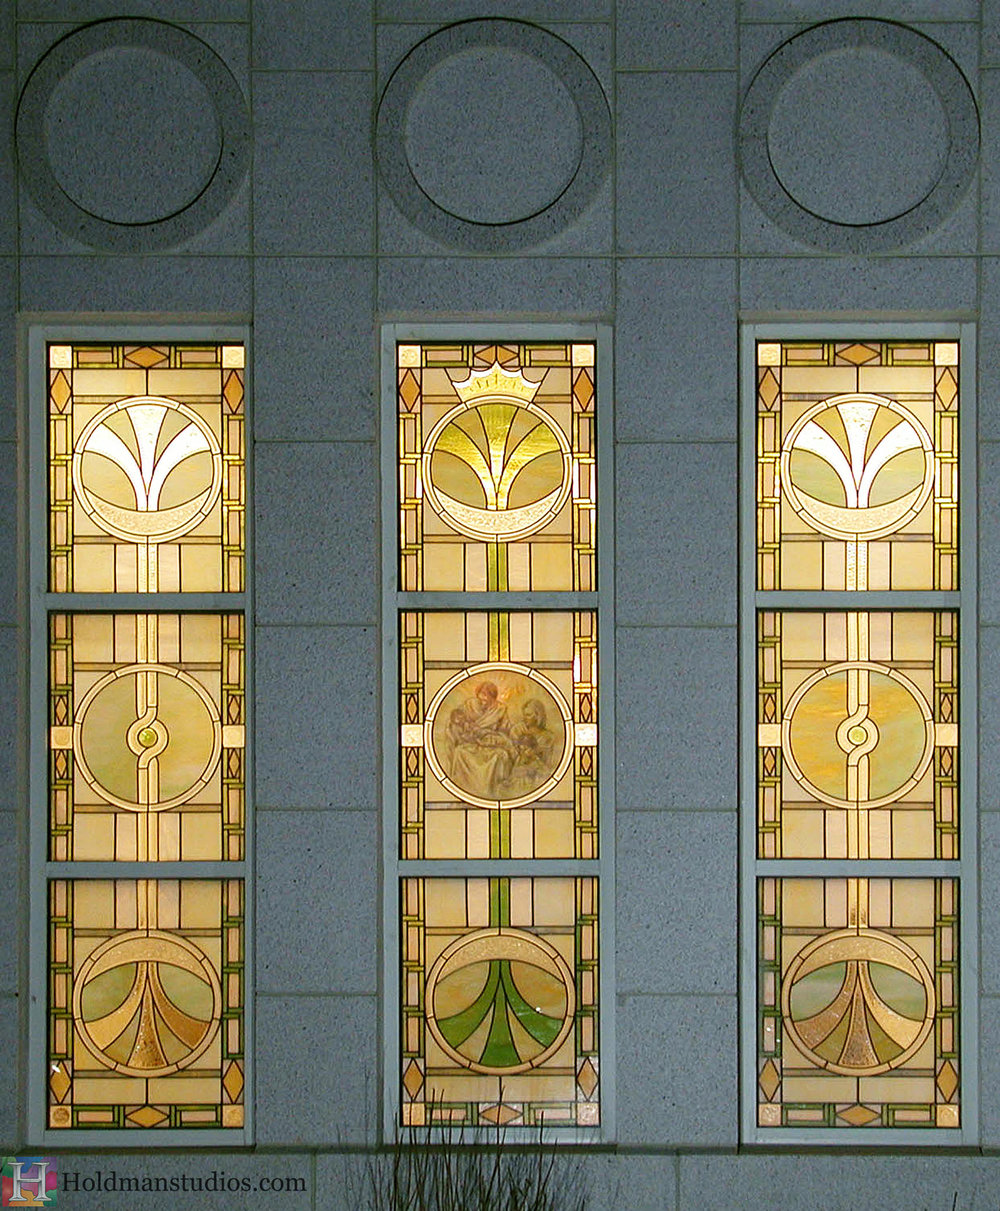 Holdman-Studios-LDS-Mormon-Temple-Winter-Quarters-Omaha-Nebraska-Eternal-Family-Trees-Circle-Sun-Moon-Stars-Crown-Exterior-Windows.jpg